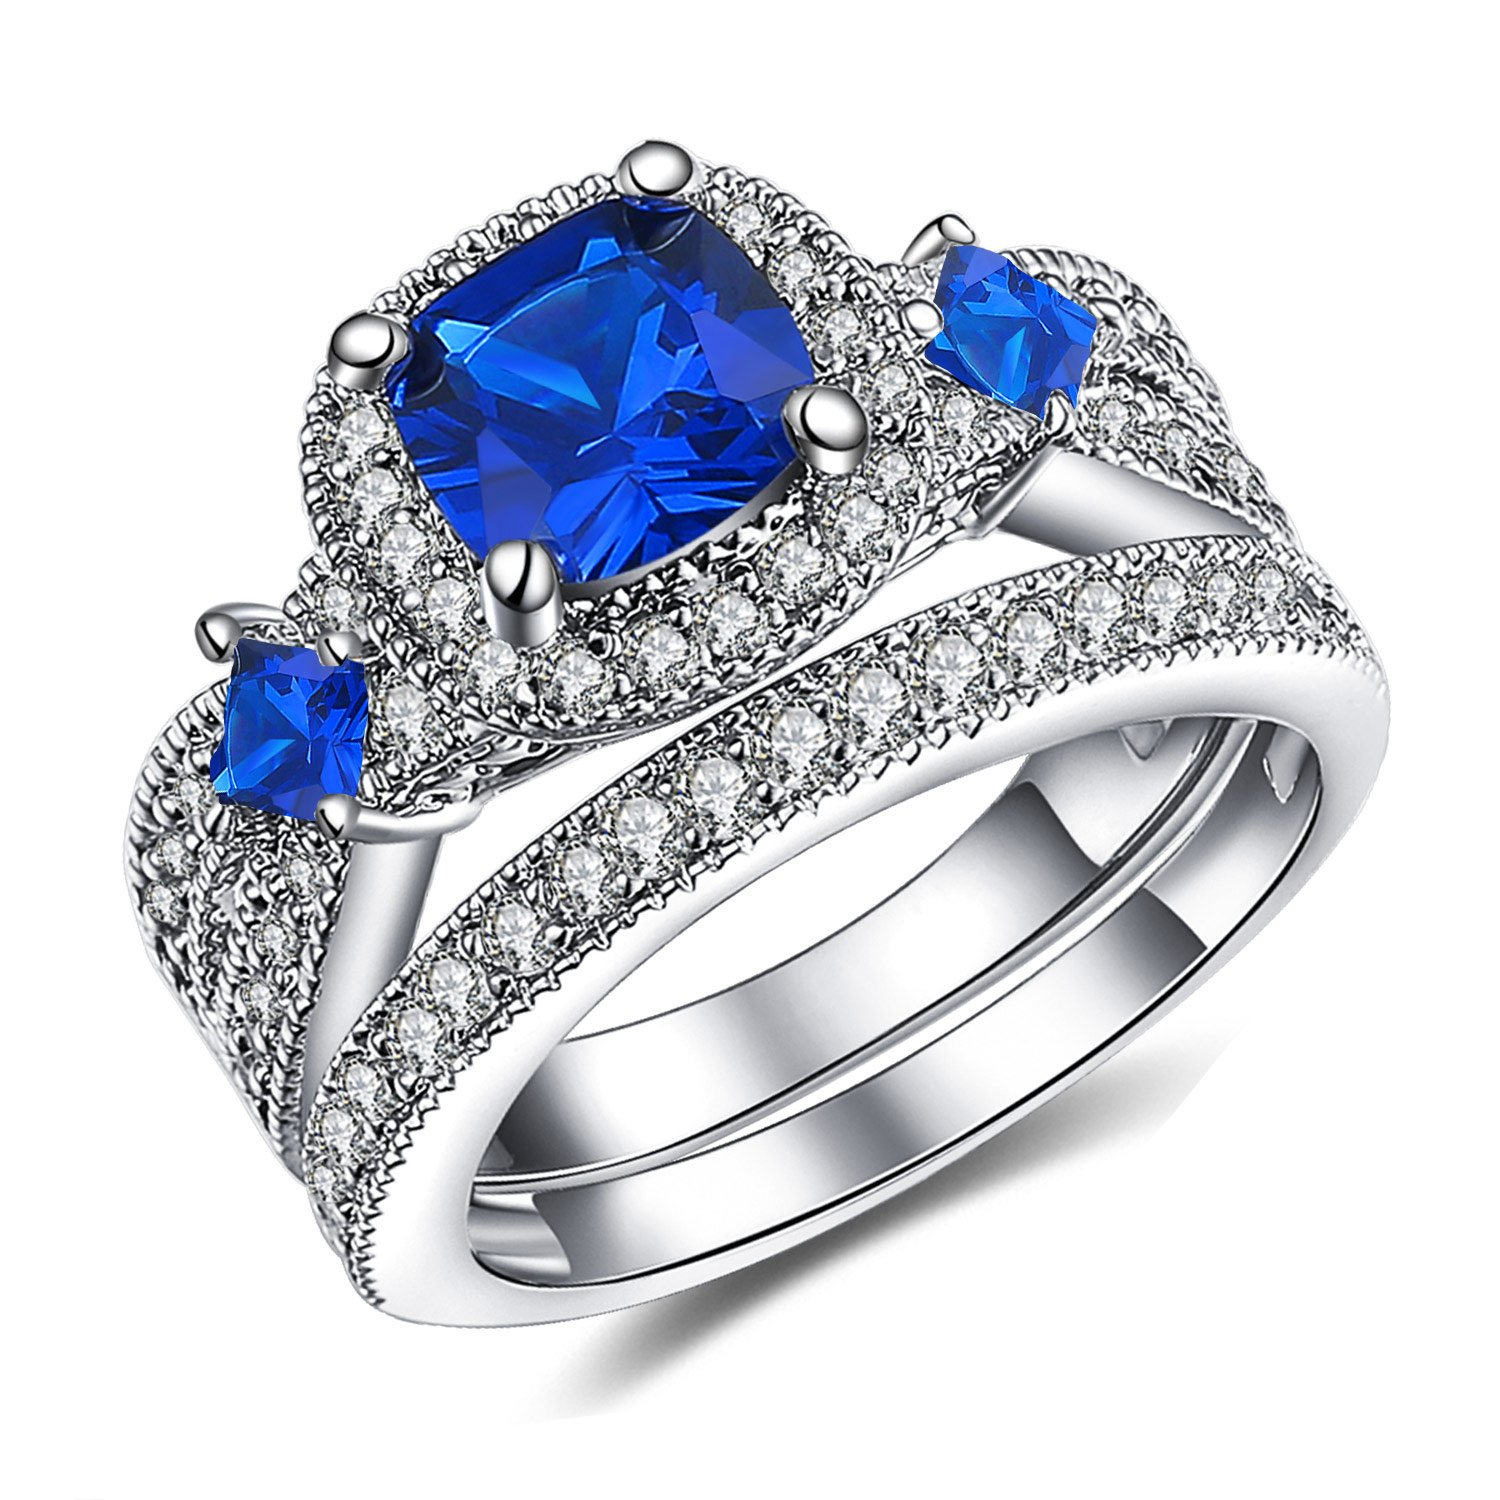 Vibrille 925 Sterling Silver Cushion-Cut Created Blue Sapphire and Cubic zirconia Square Frame Bridal Wedding Ring Sets Size 8